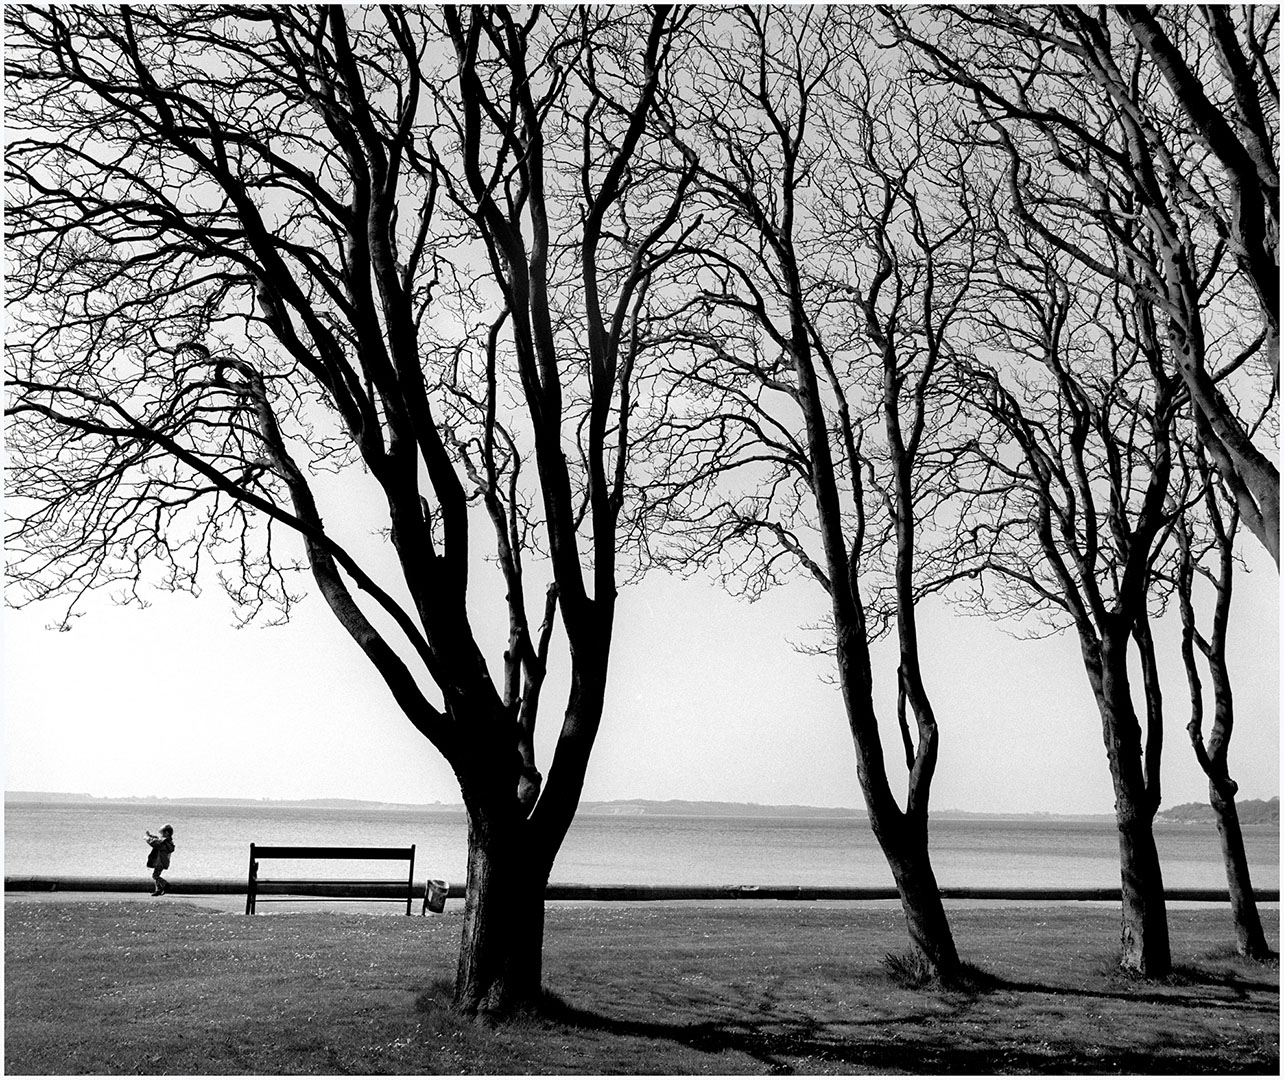 Wish_you_were_here_in_Black_and_White_069_B2.25